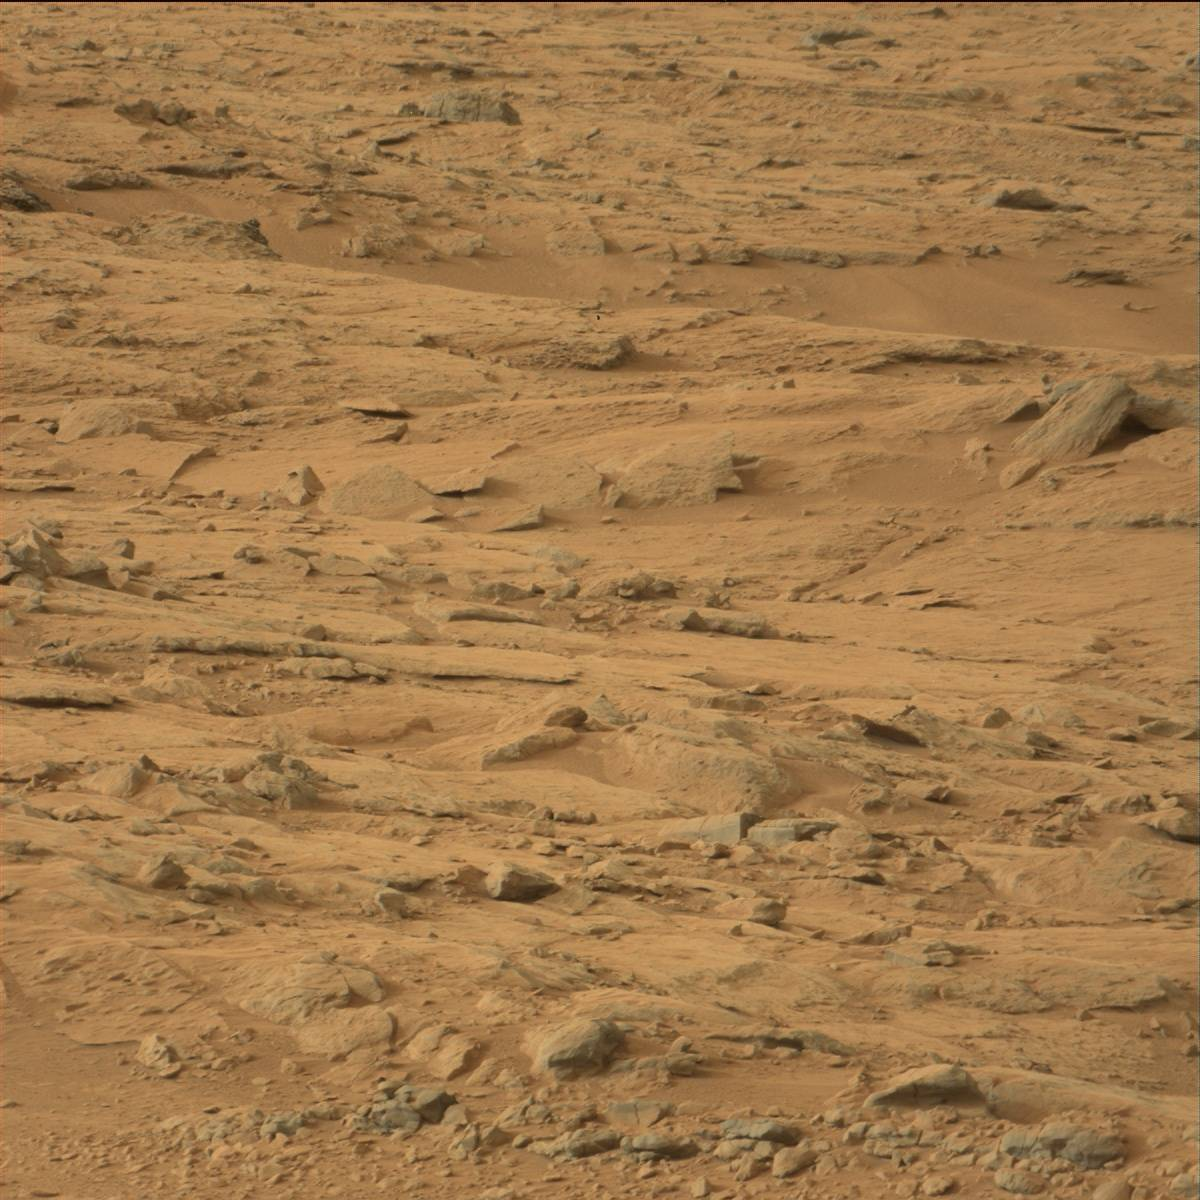 mars rover discovery - photo #27